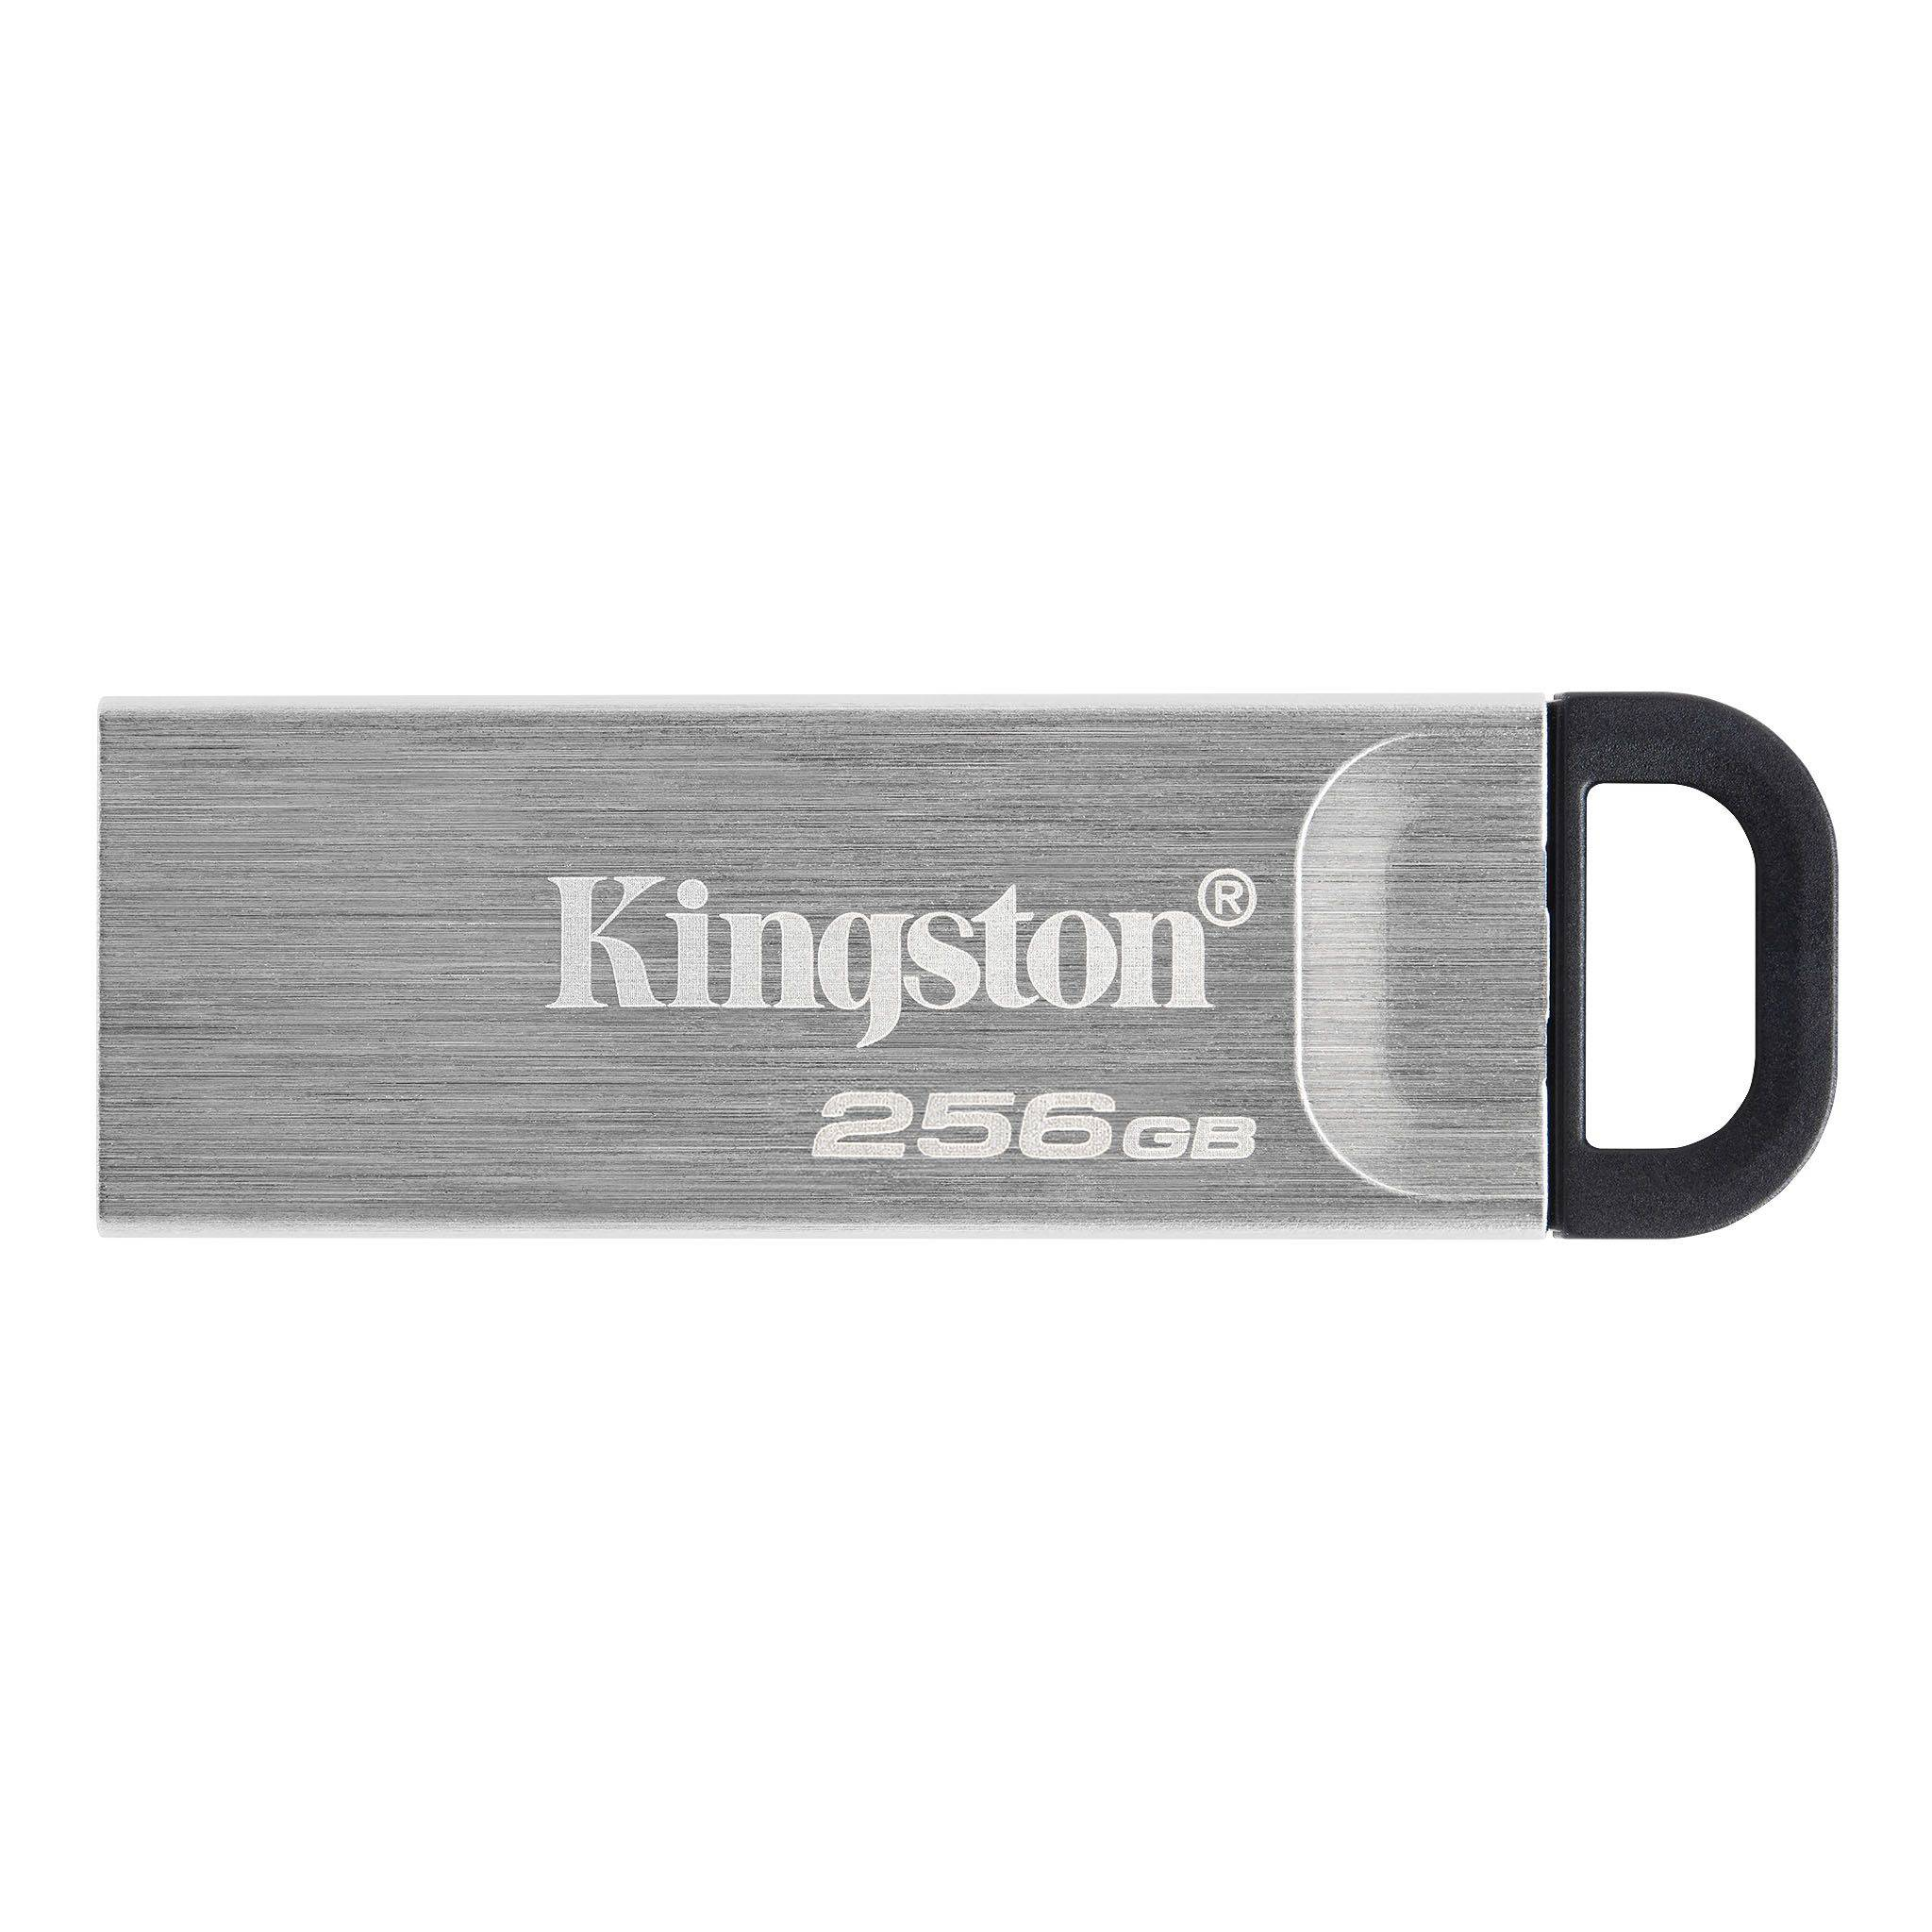 256GB Kingston USB 3.2 (gen 1) DT Kyson